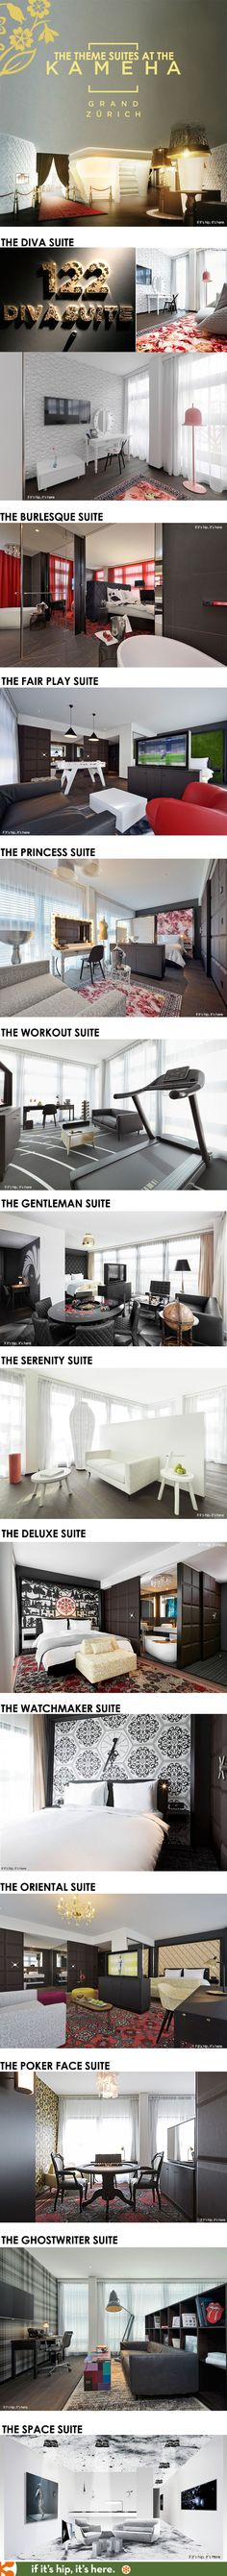 "The ""Theme Suites"" at the amazingly cool new Kameha Grand Zurich."